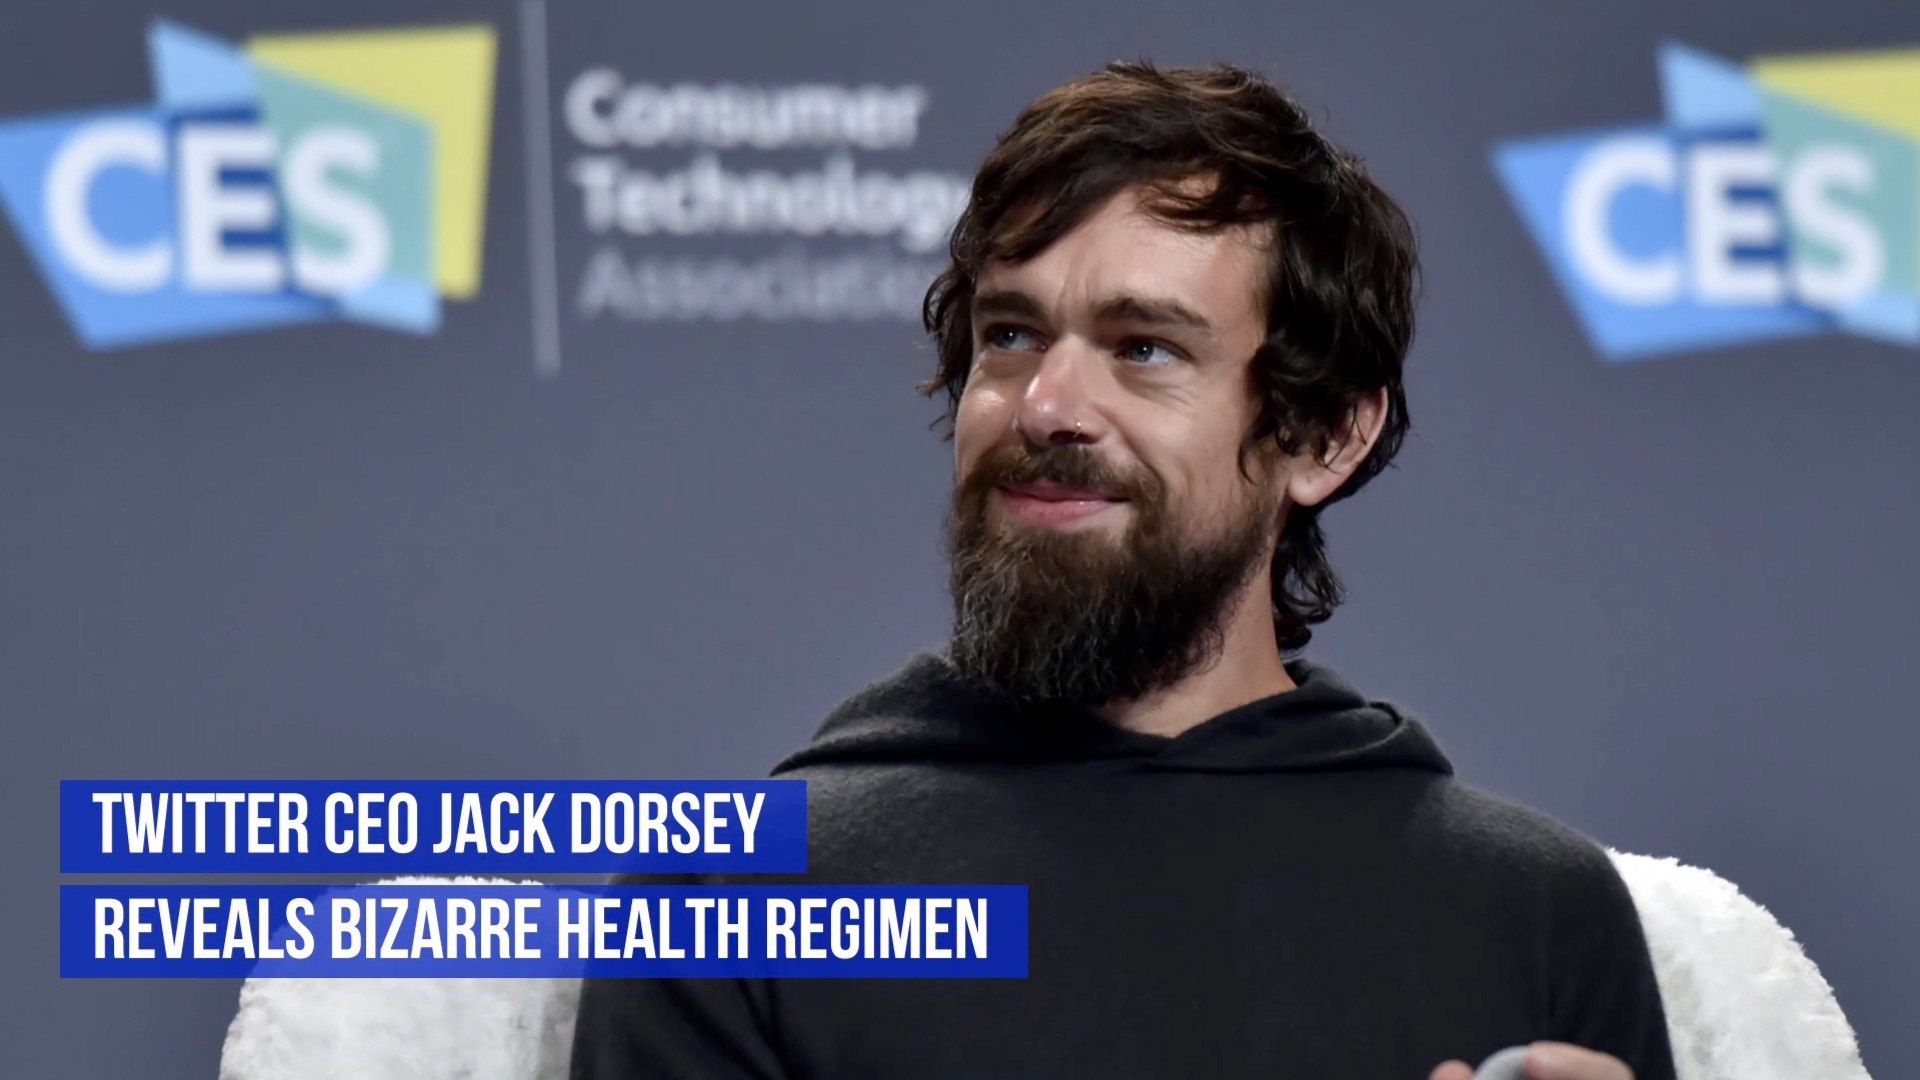 Twitter CEO Has An Unusual Daily Physical Routine